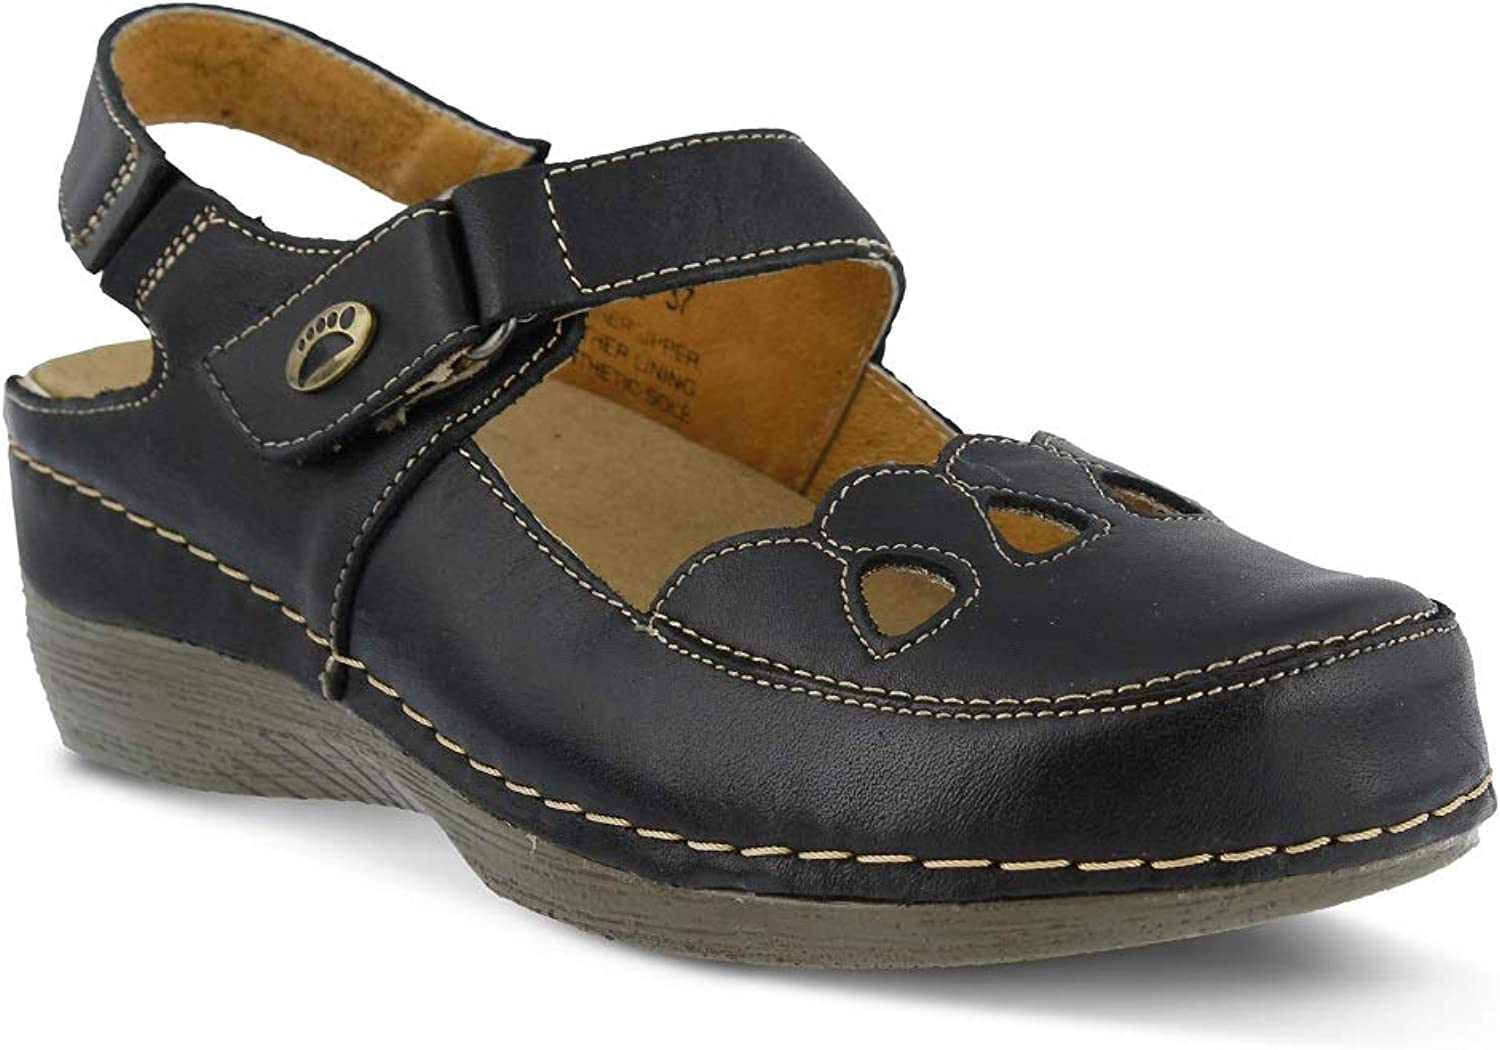 Spring Step Women's Hope Clog & Mules   color Black   Leather Clog & Mules